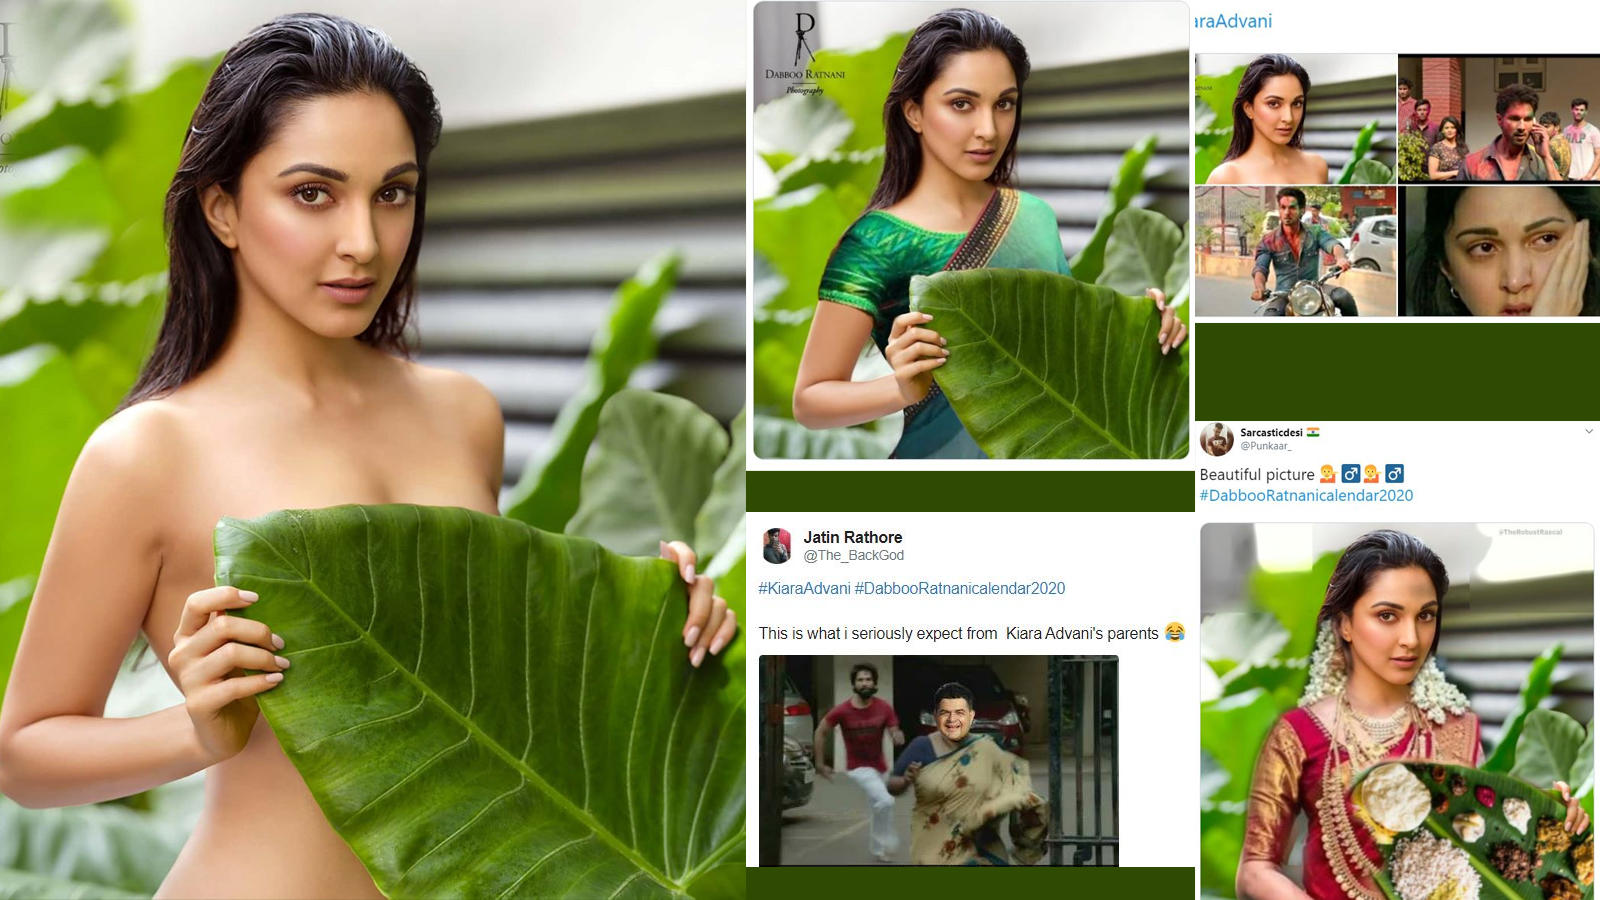 kiara-advanis-topless-picture-for-a-calendar-shoot-turns-into-a-meme-fest-for-netizens